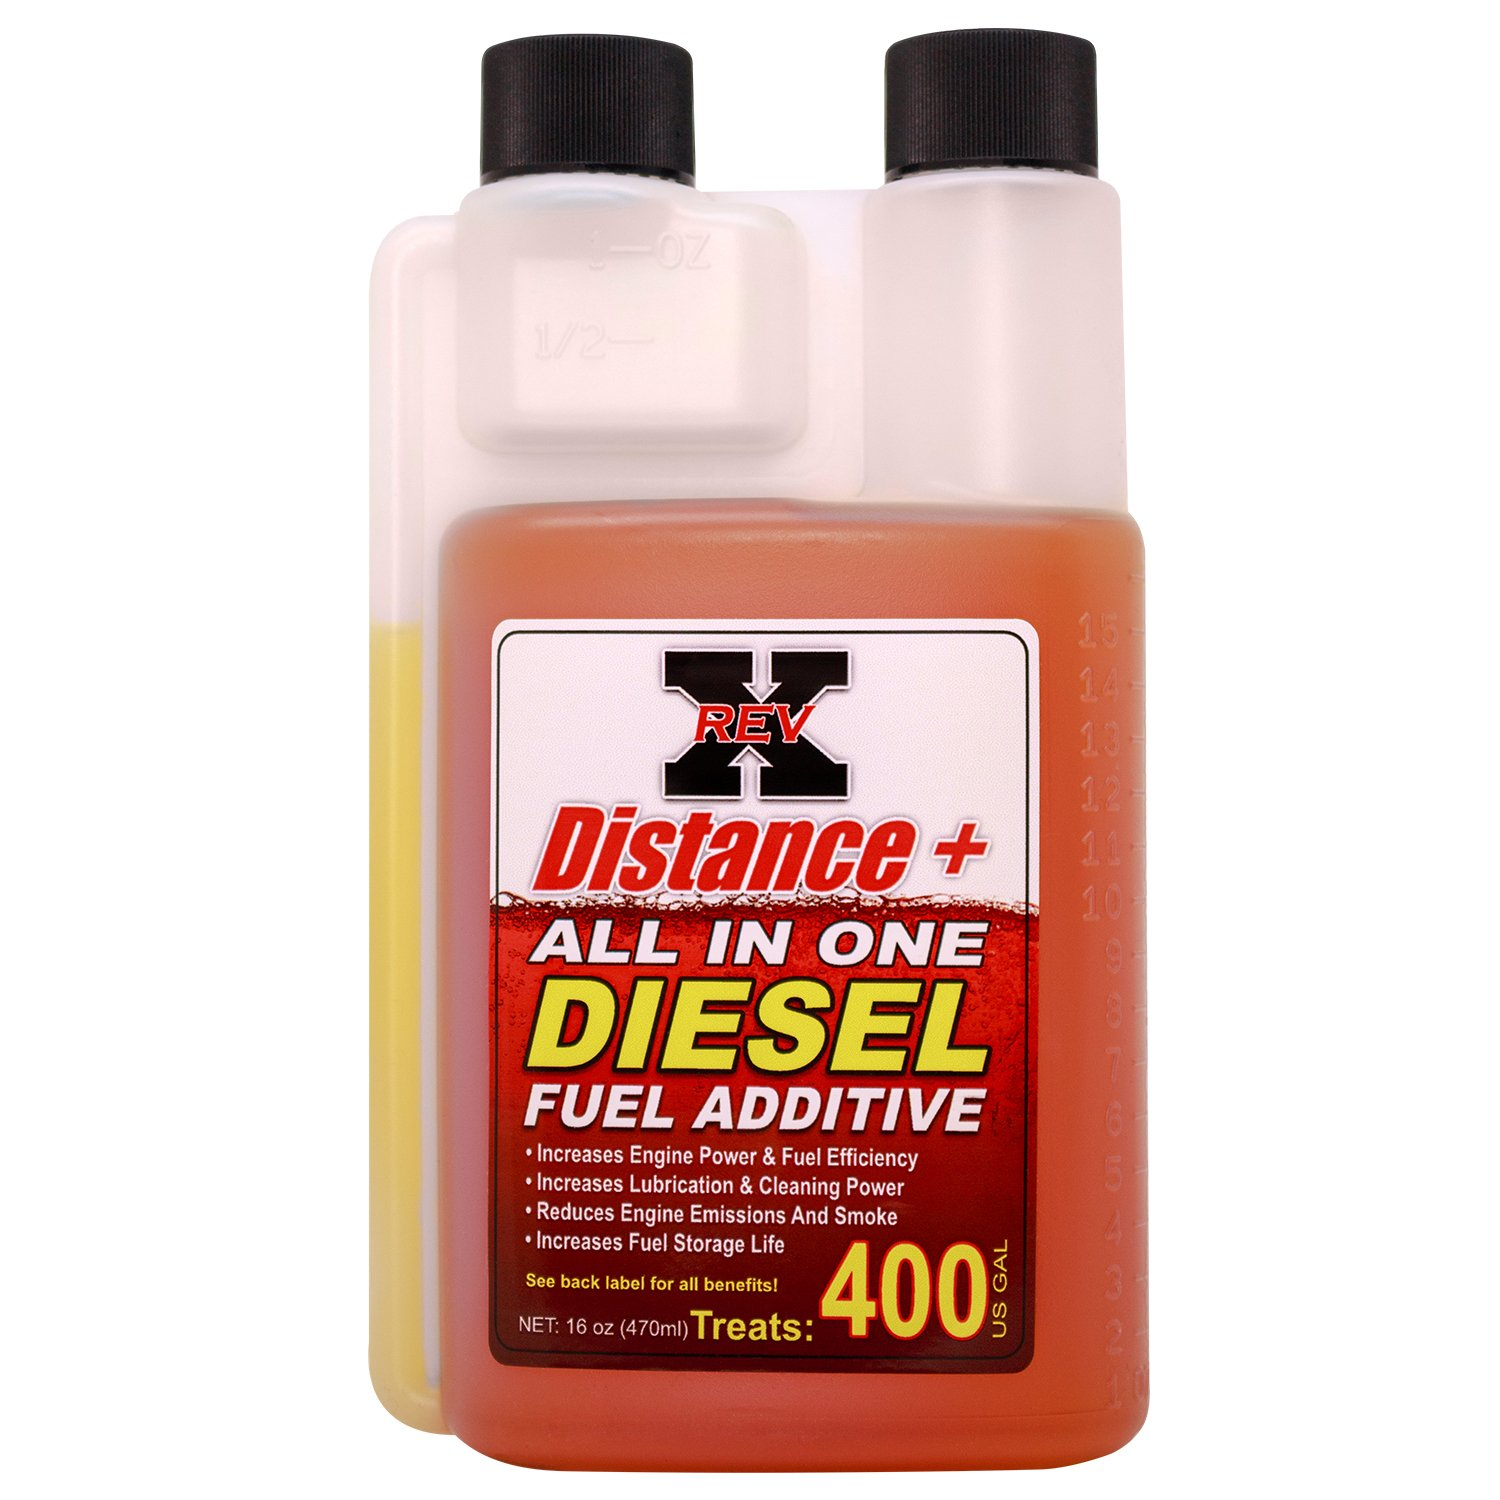 Amazon.com: REV-X Diesel Engine Complete Treatment - Treat 6 gal. of Oil and 400 gal. of Fuel: Automotive